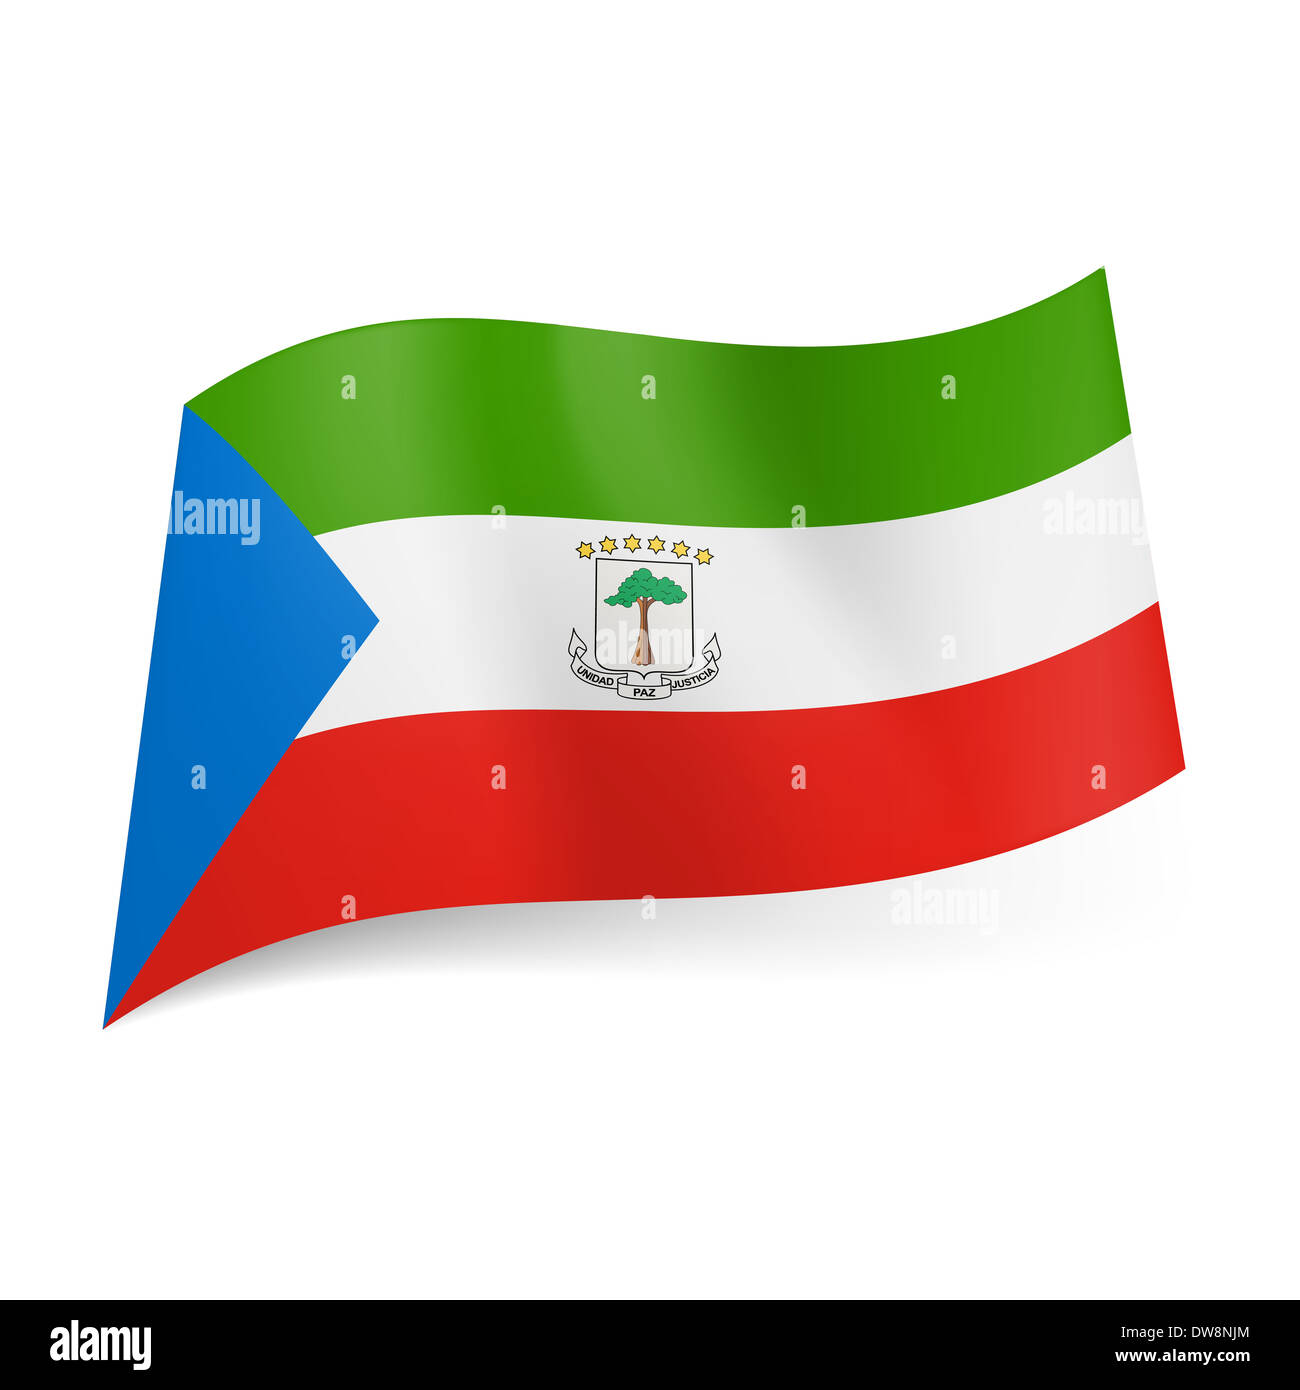 National Flag Of Equatorial Guinea Green White And Red